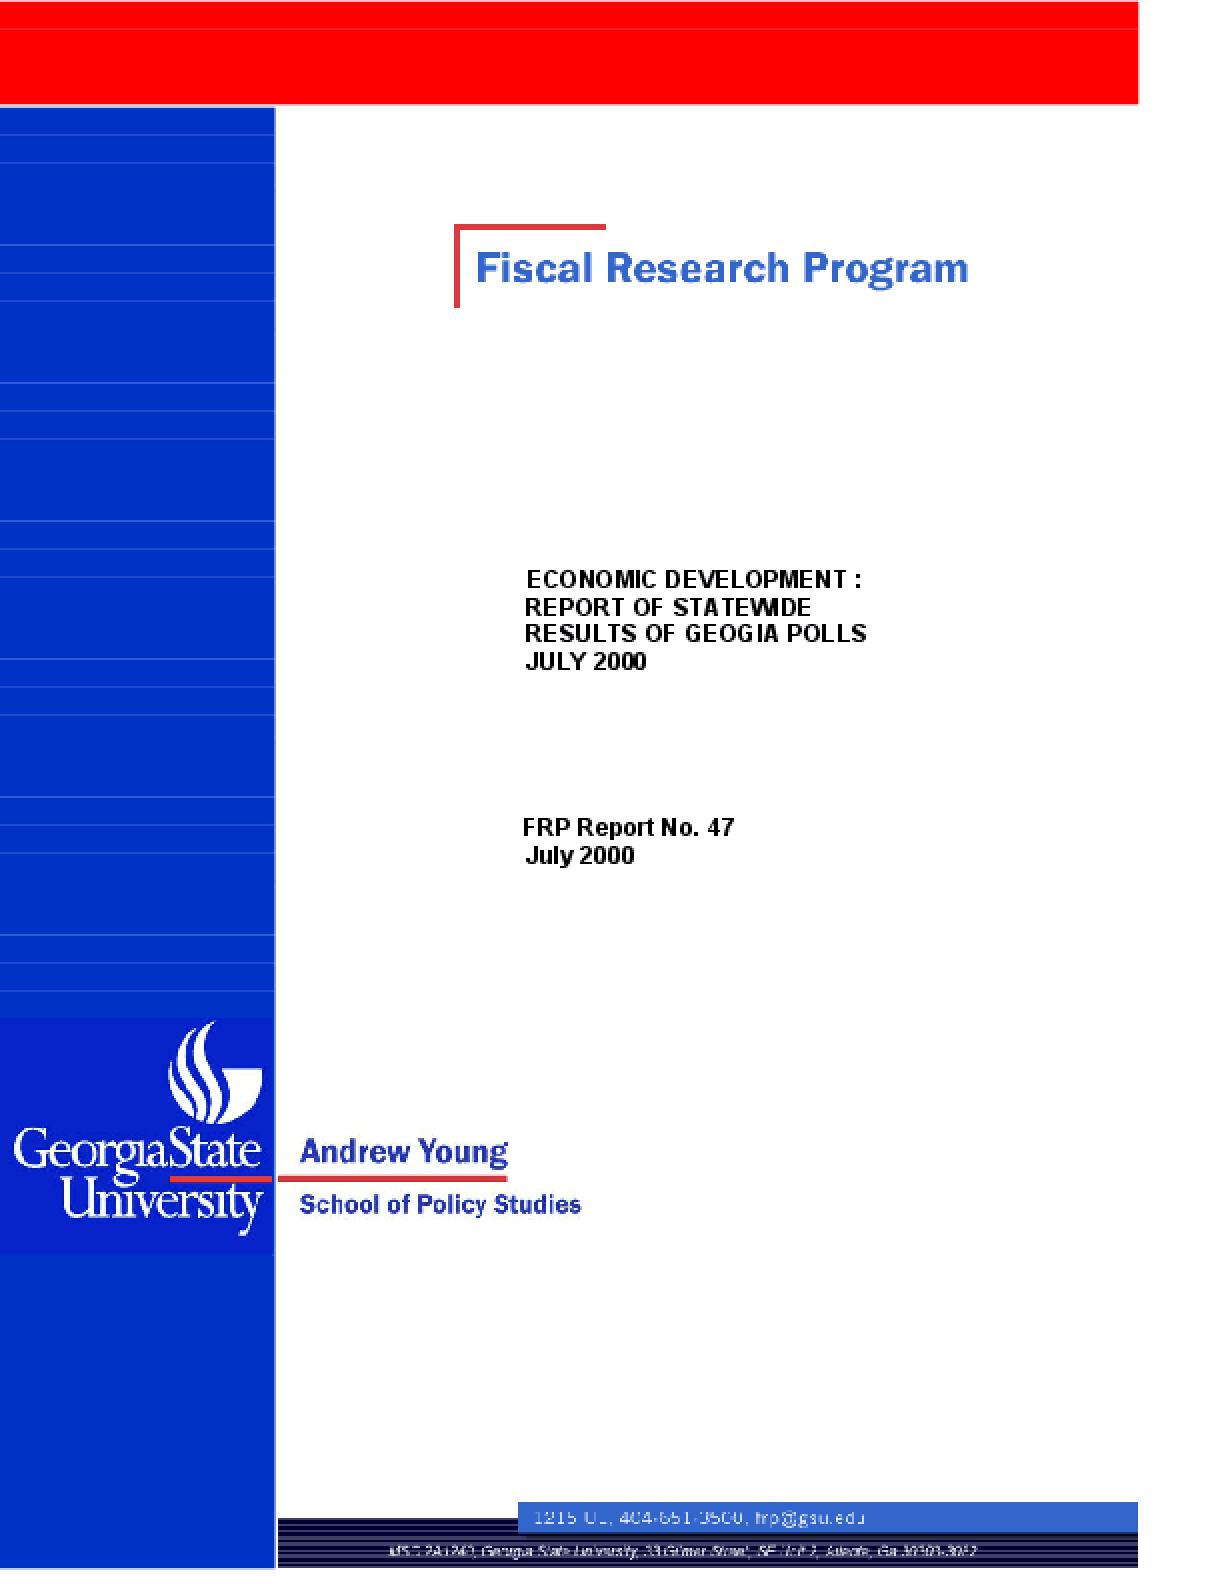 Economic Development: Report of Statewide Results of Georgia Poll July 2000